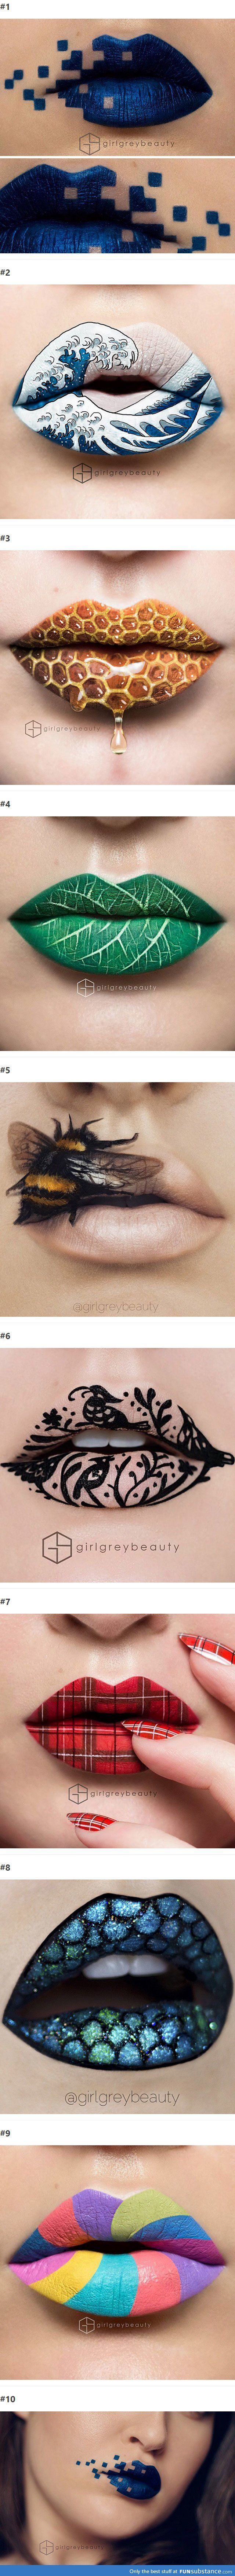 Makeup Artist Uses Her Lips To Create Stunning Art Pieces: